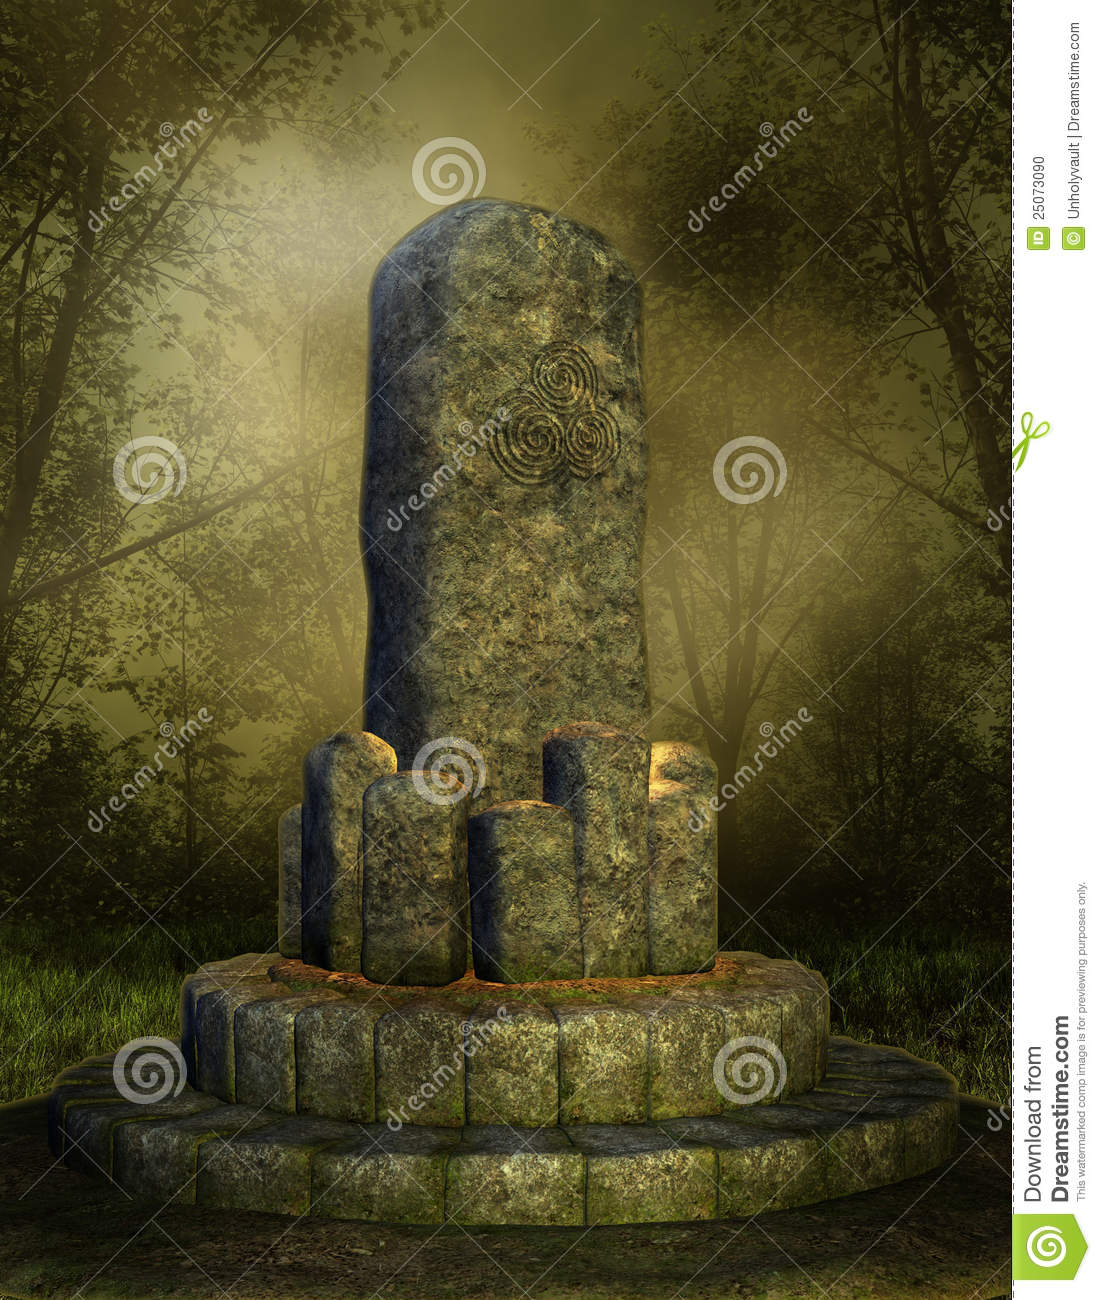 Stone Altar In A Forest Stock Photo - Image: 25073090 Ancient Ruins Fantasy